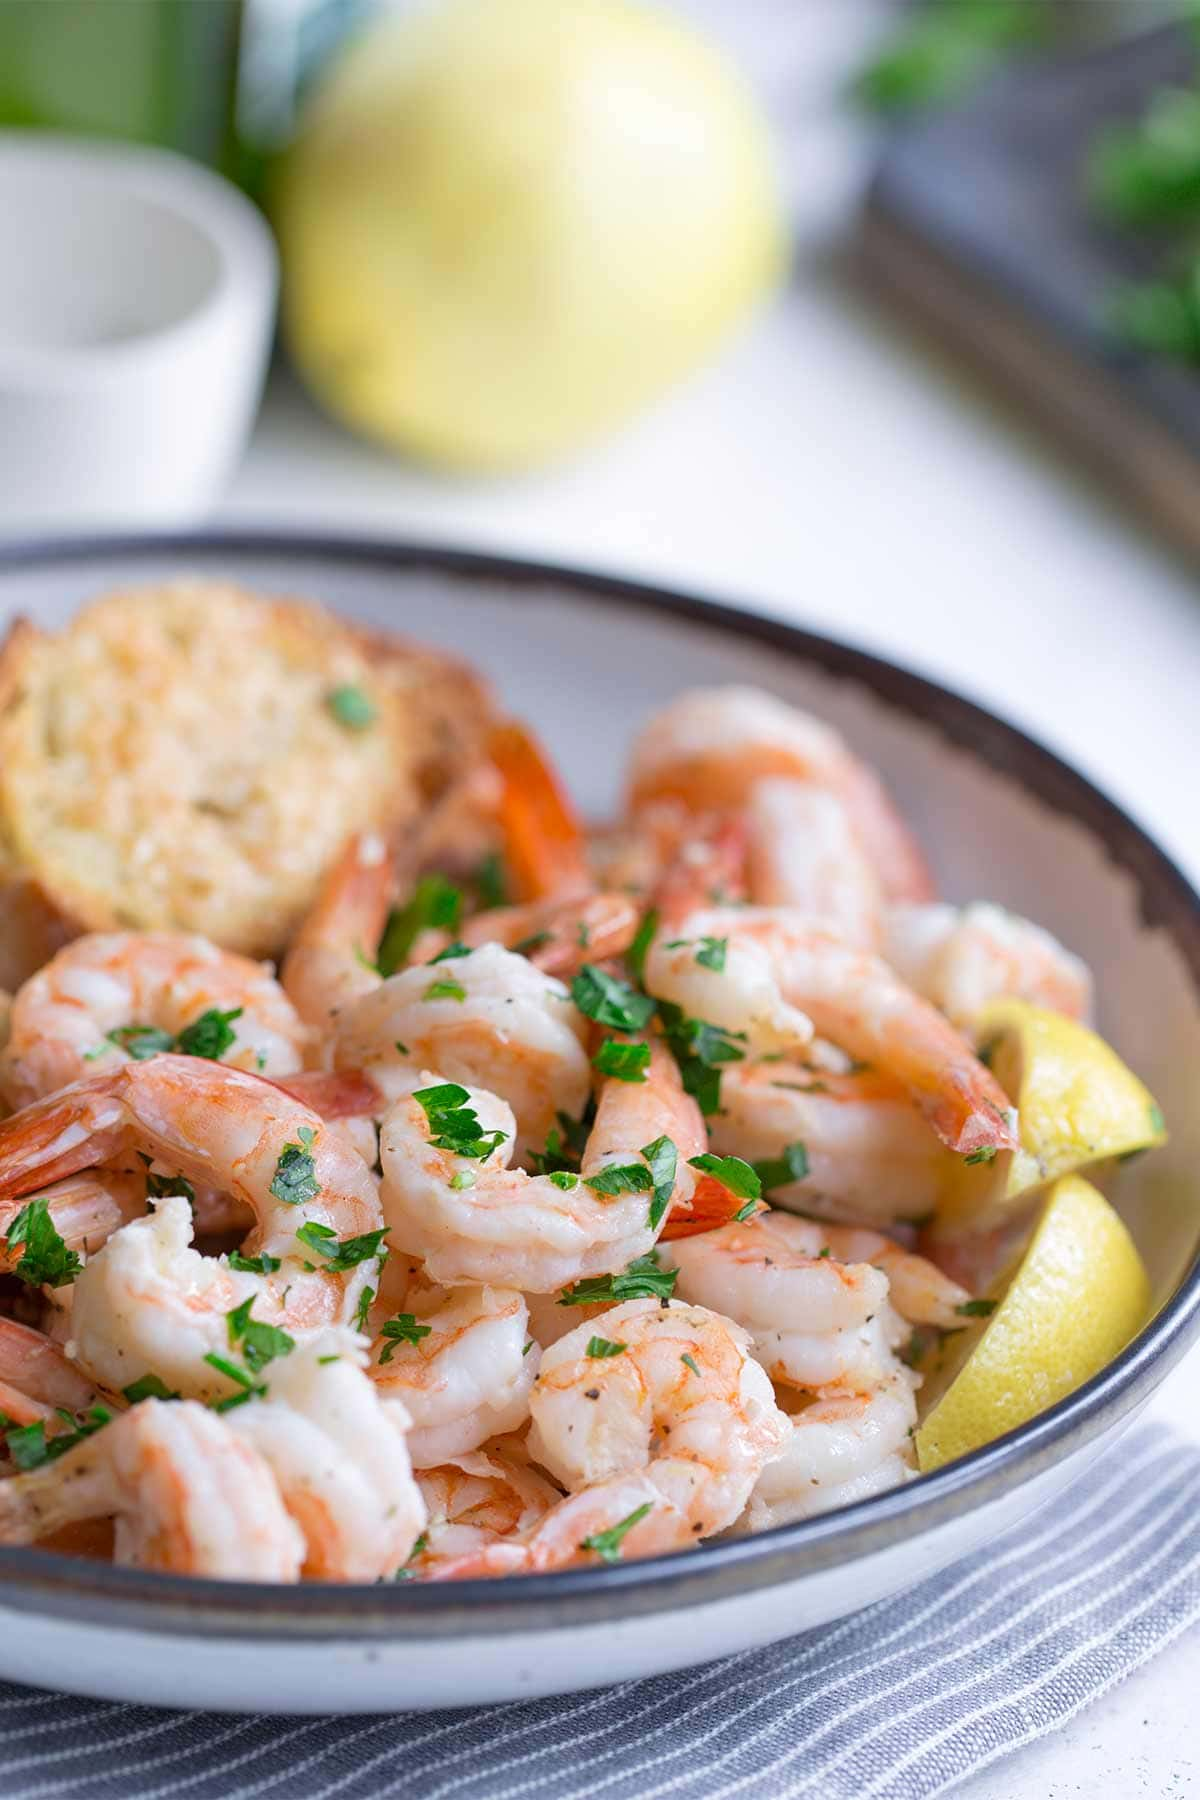 Sheet pan shrimp scampi in a bowl with bread and lemon, one of my favorite easy dinner recipes